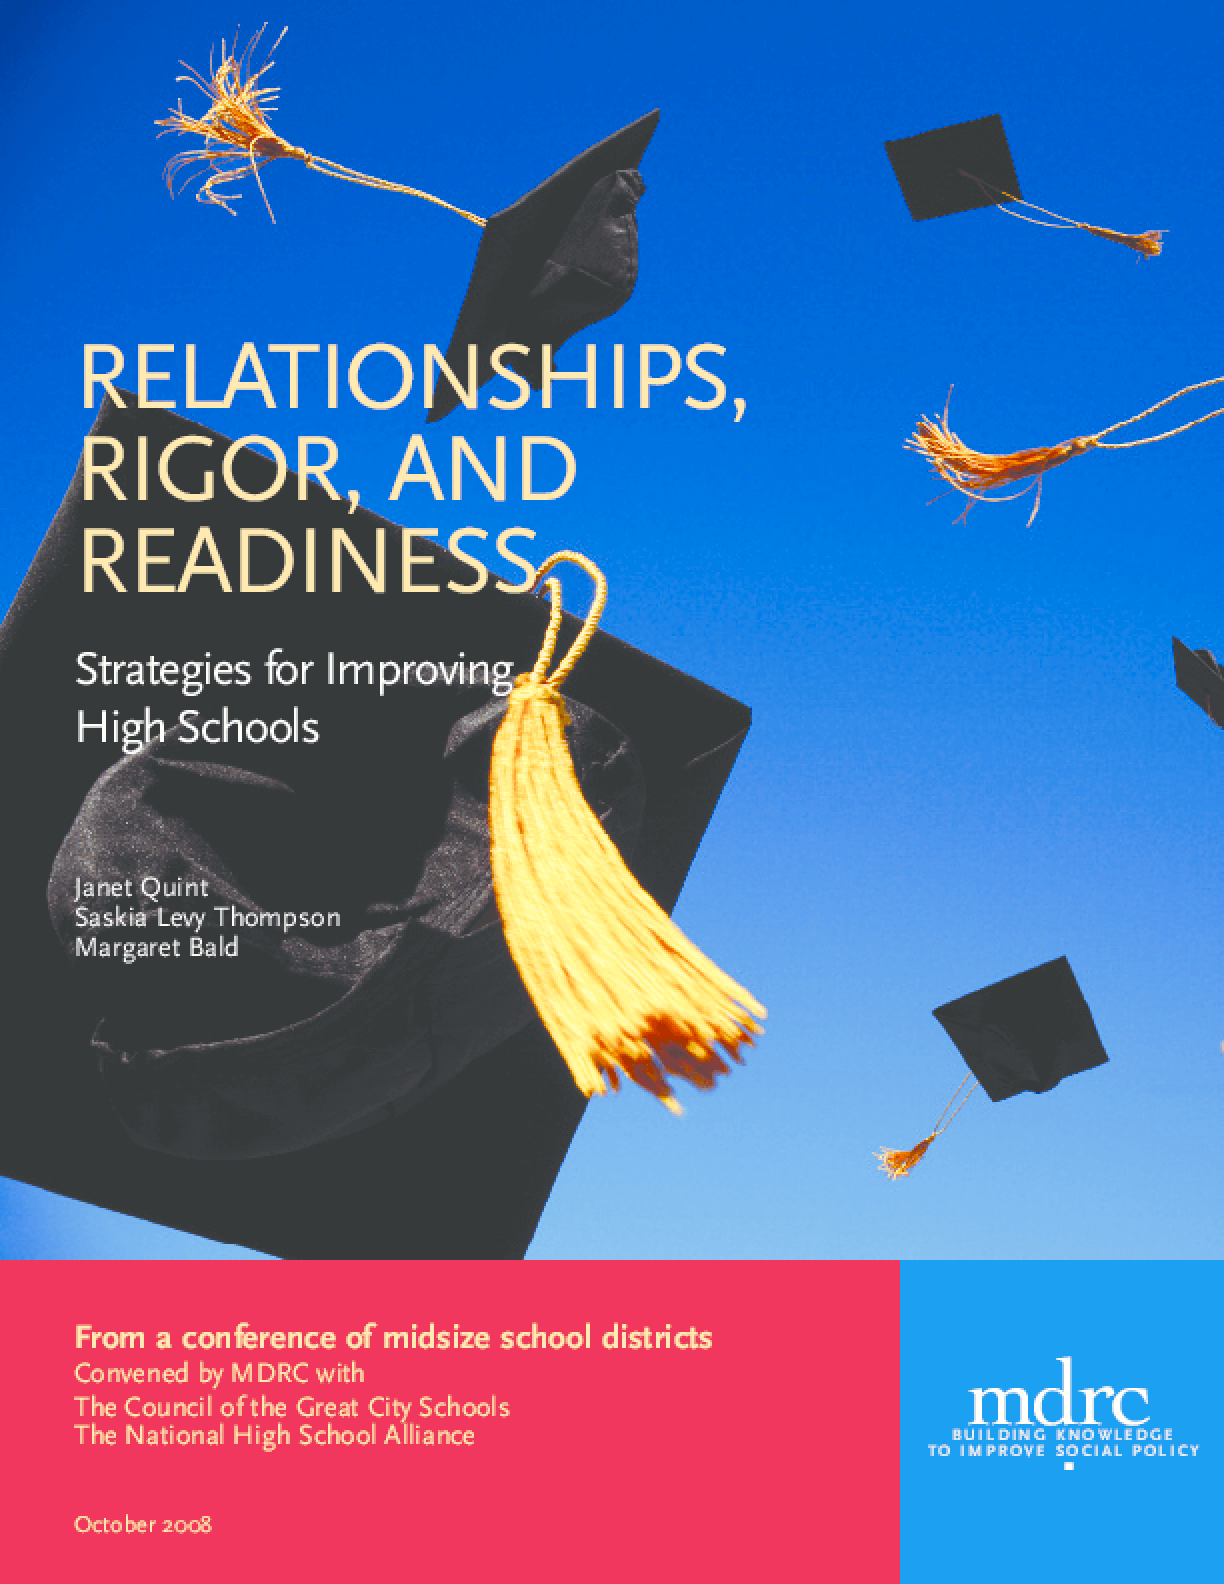 Relationships, Rigor, and Readiness: Strategies for Improving High Schools